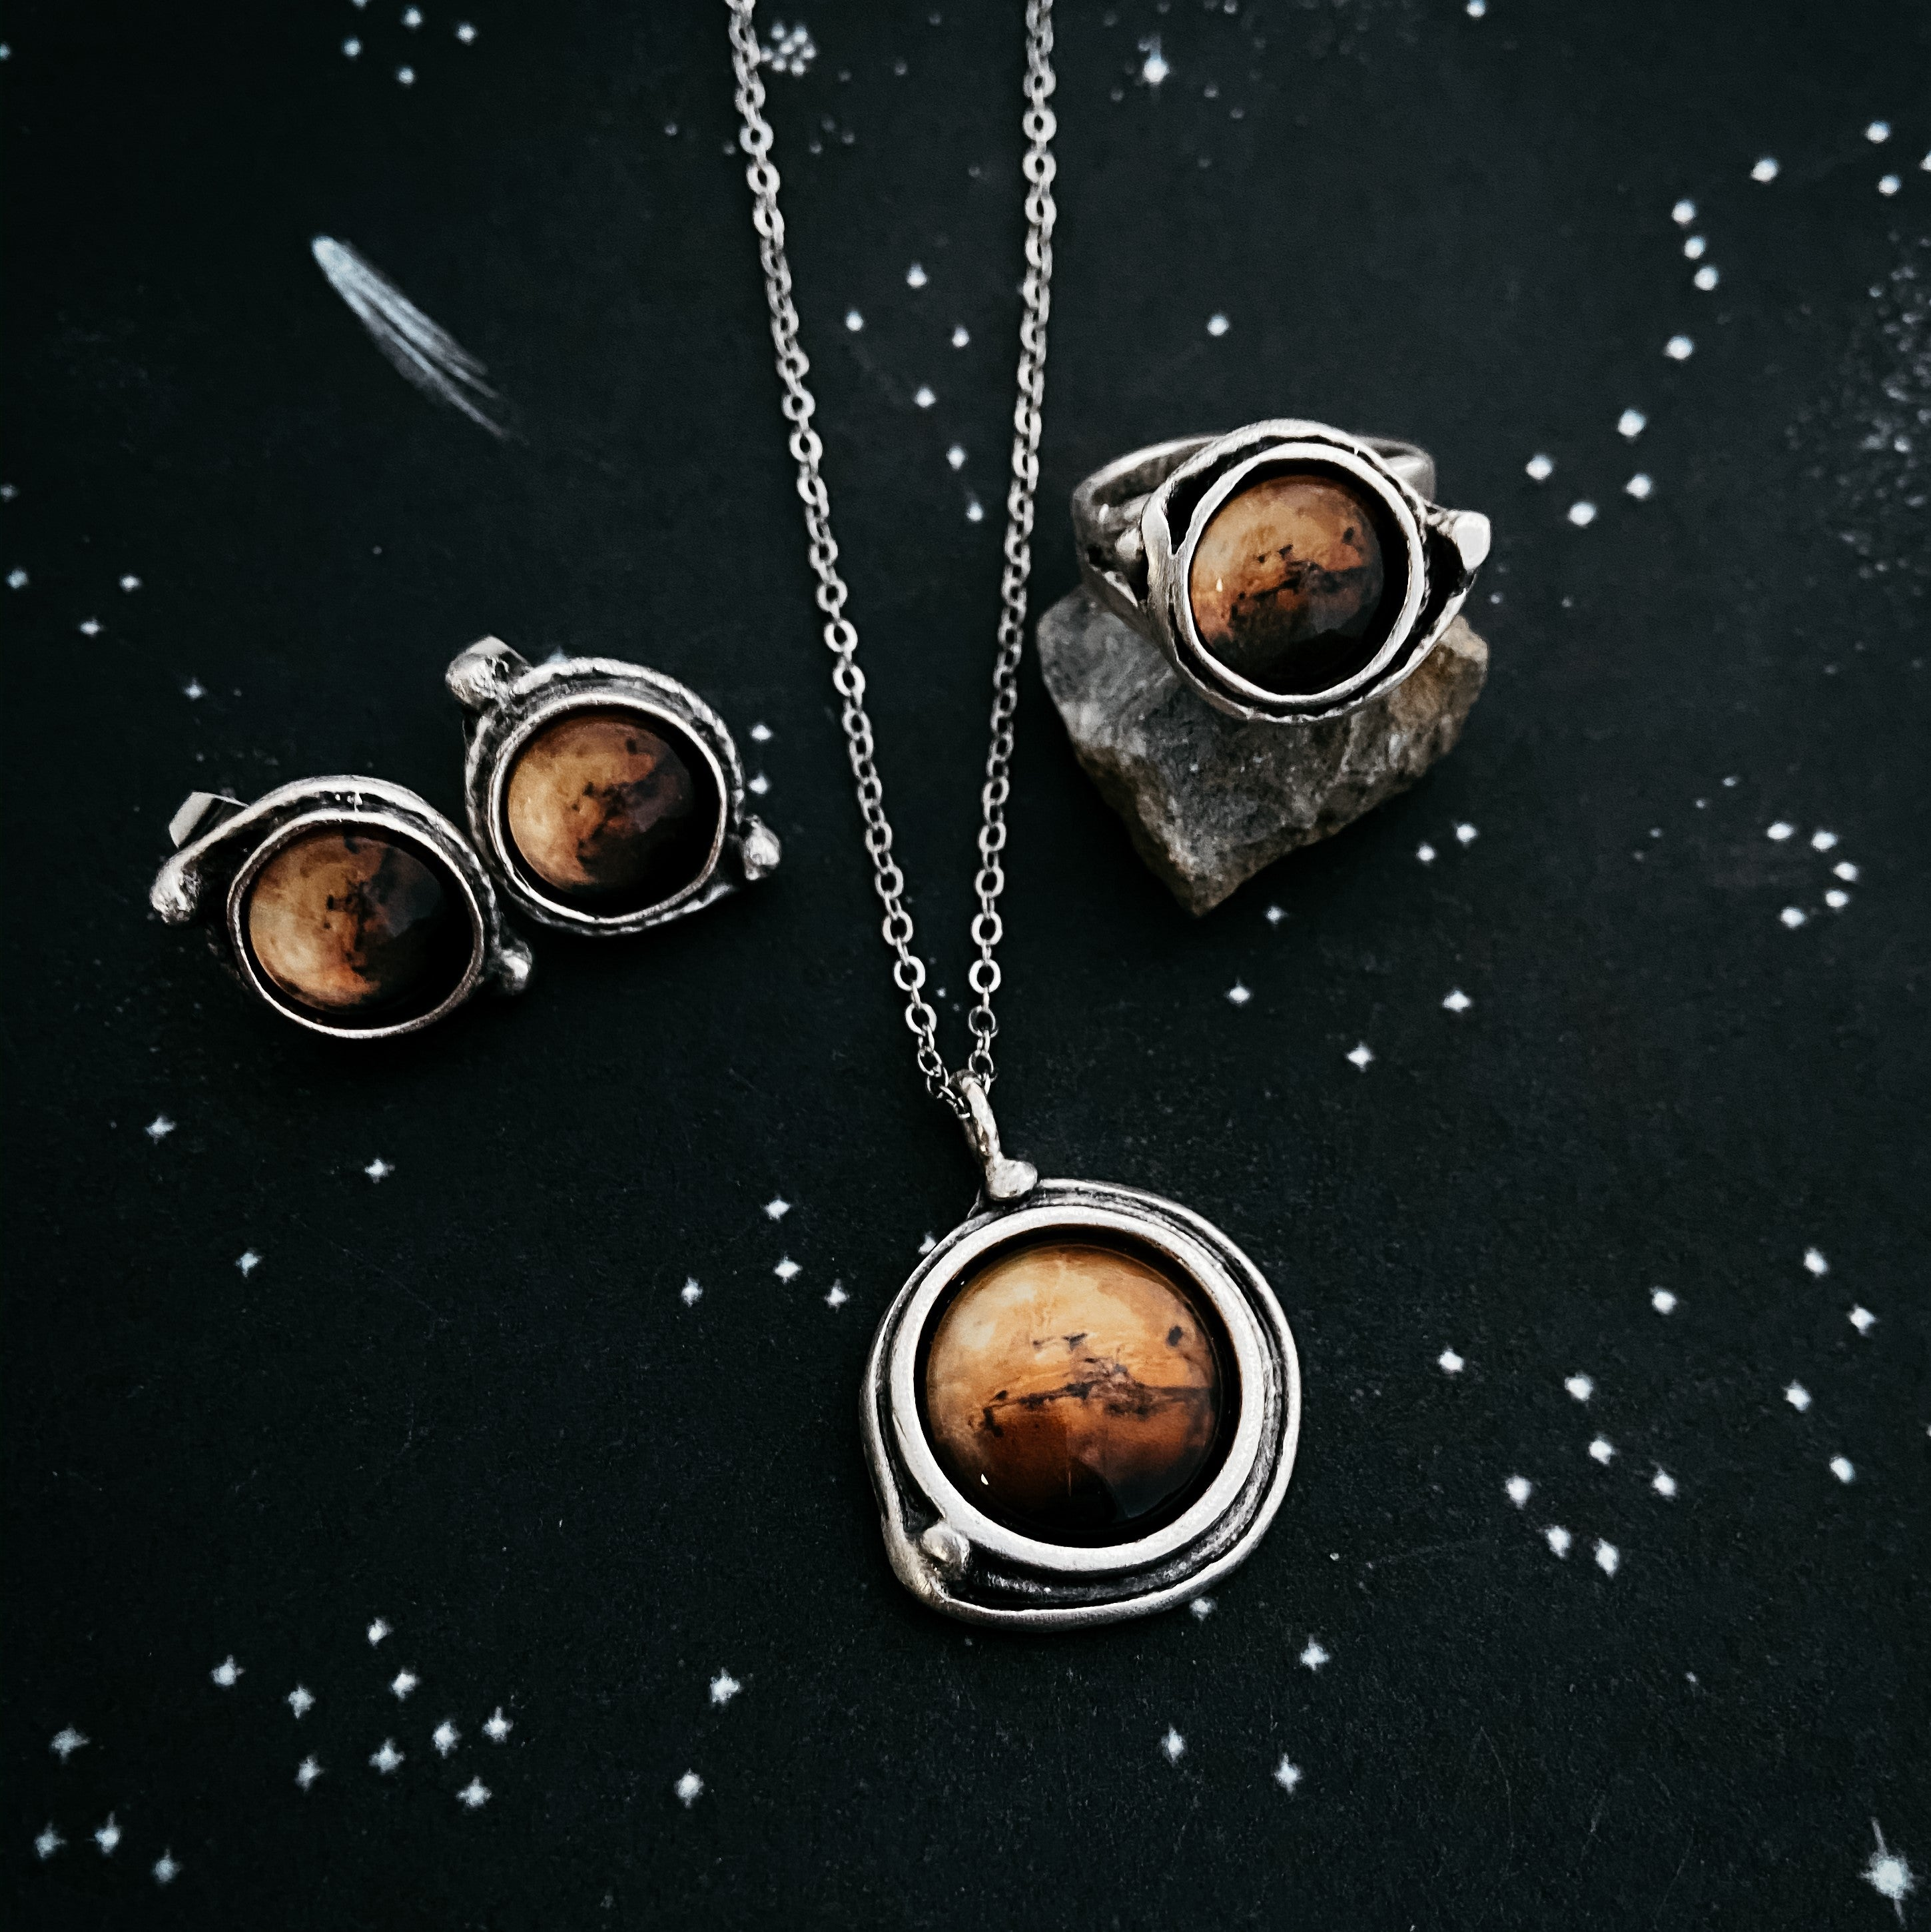 Mars Jewelry Gift Set - Necklace, Earrings, and Ring - Yugen Tribe